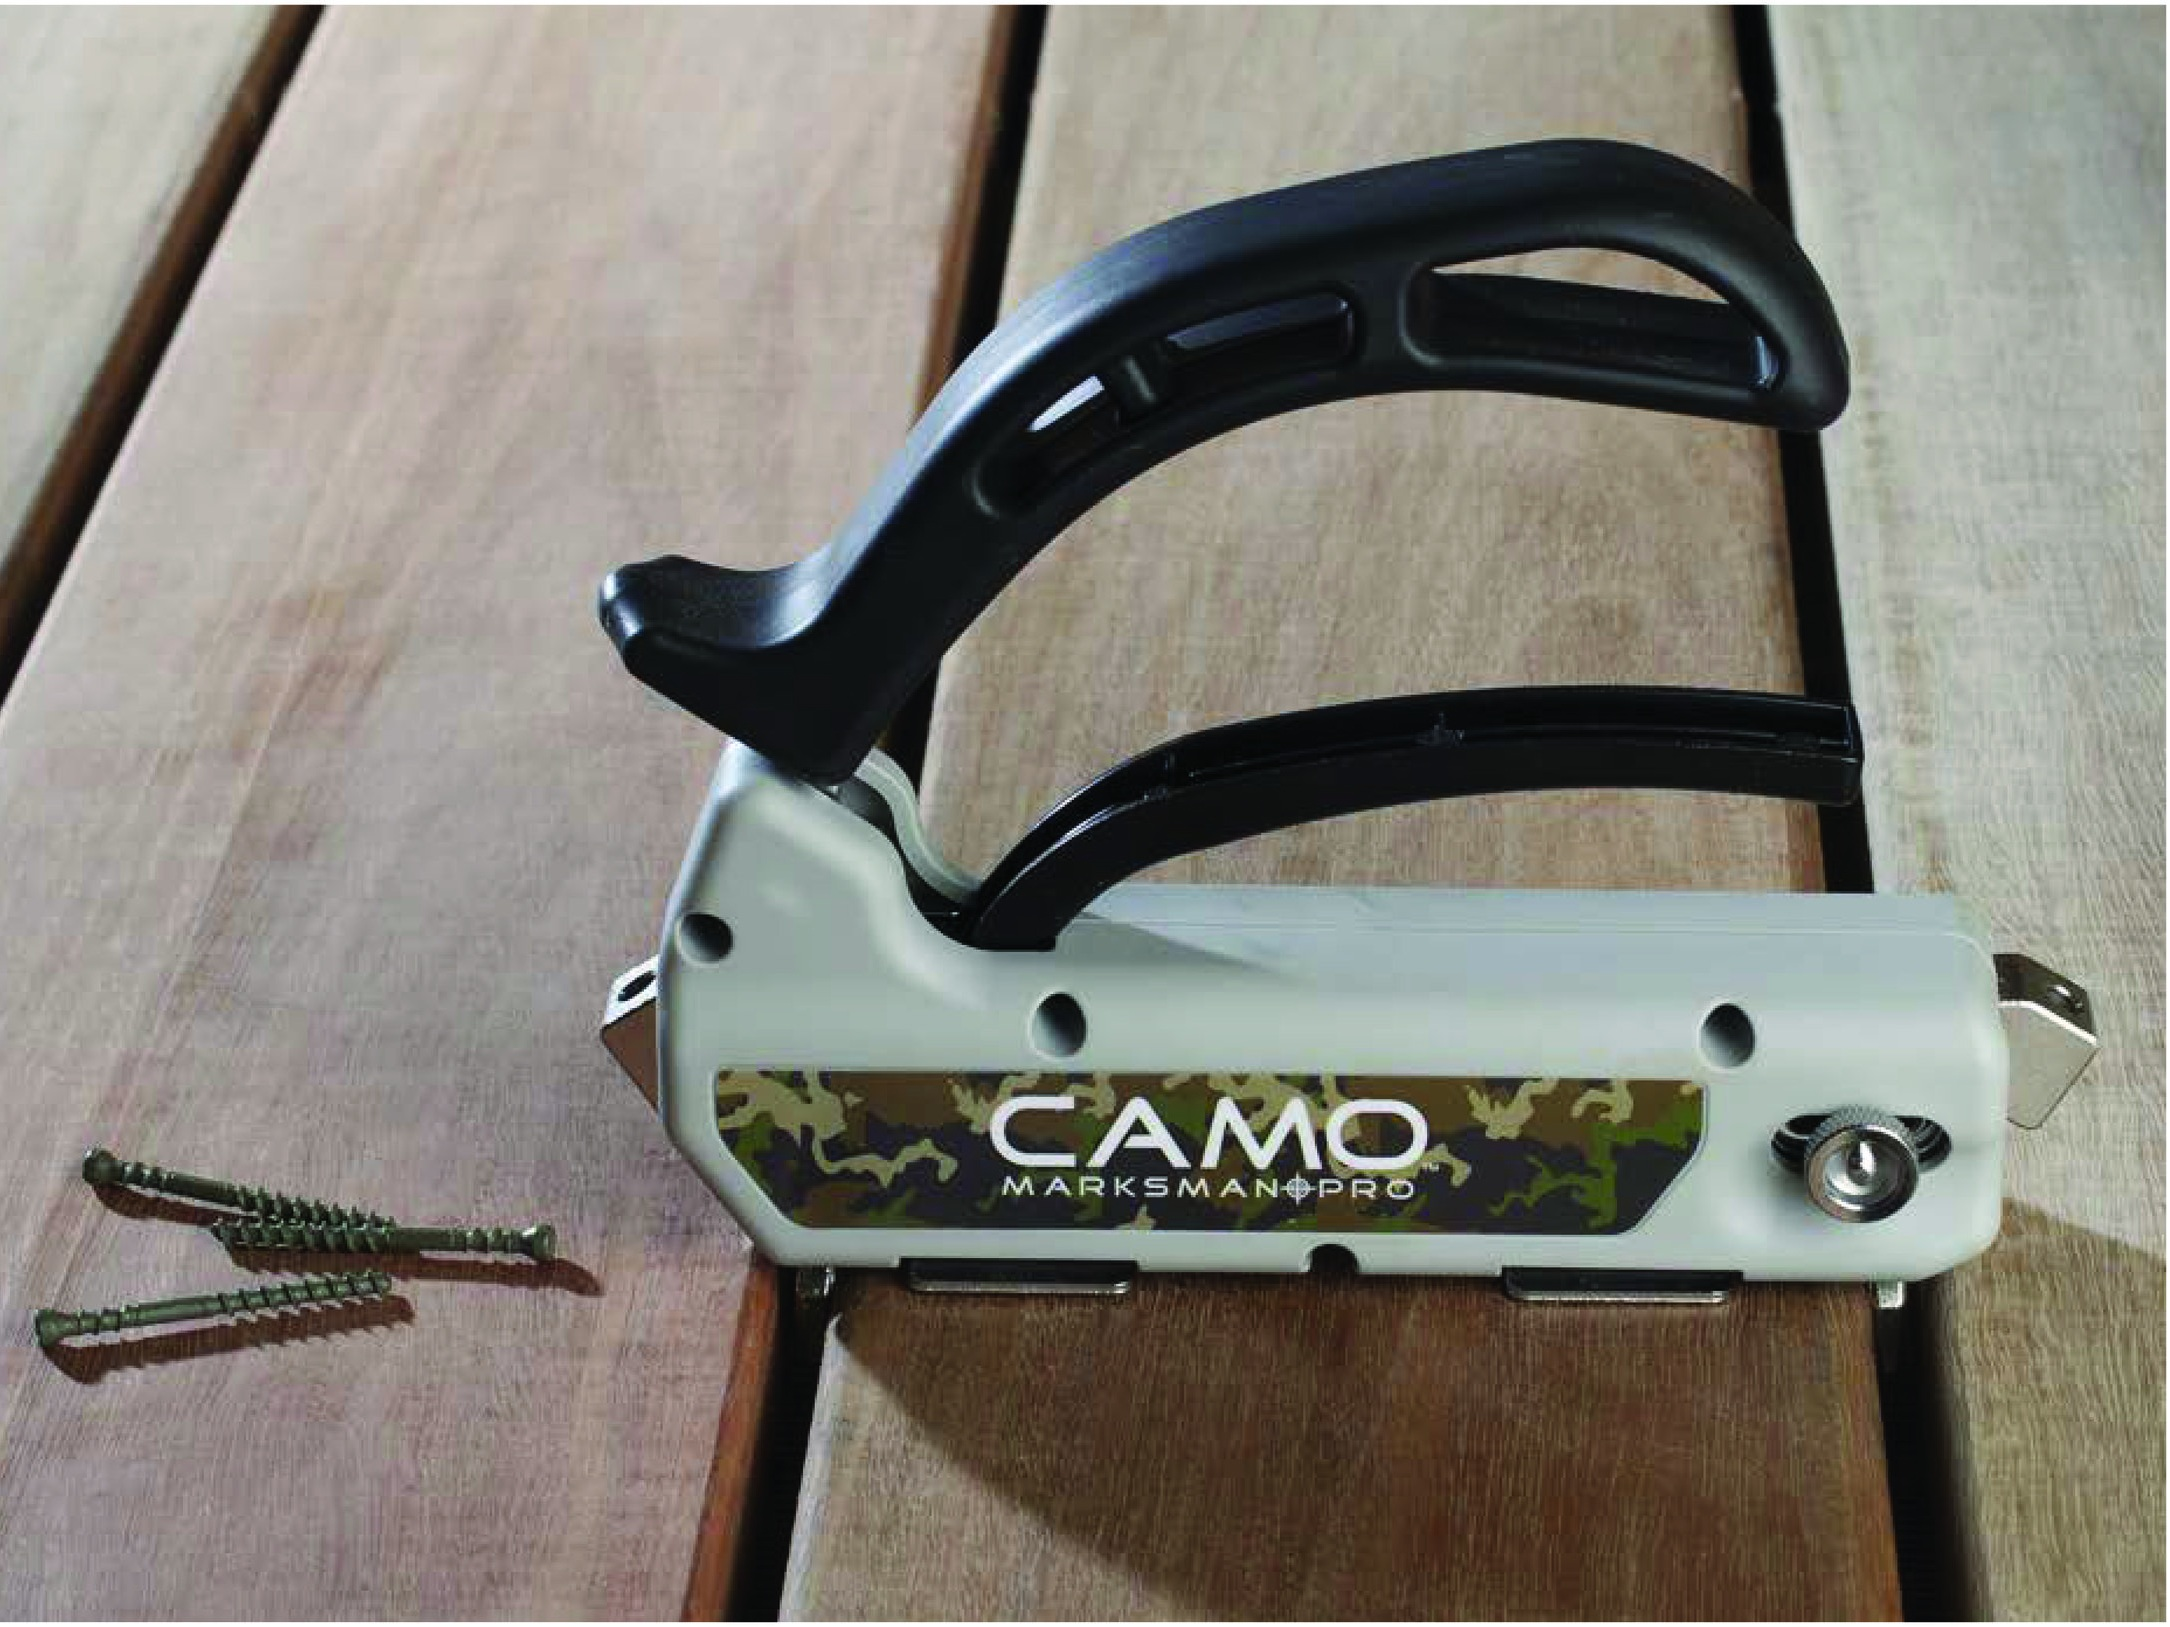 Camo Marksman Tools - For use on Wood and Wood Alternative Decks